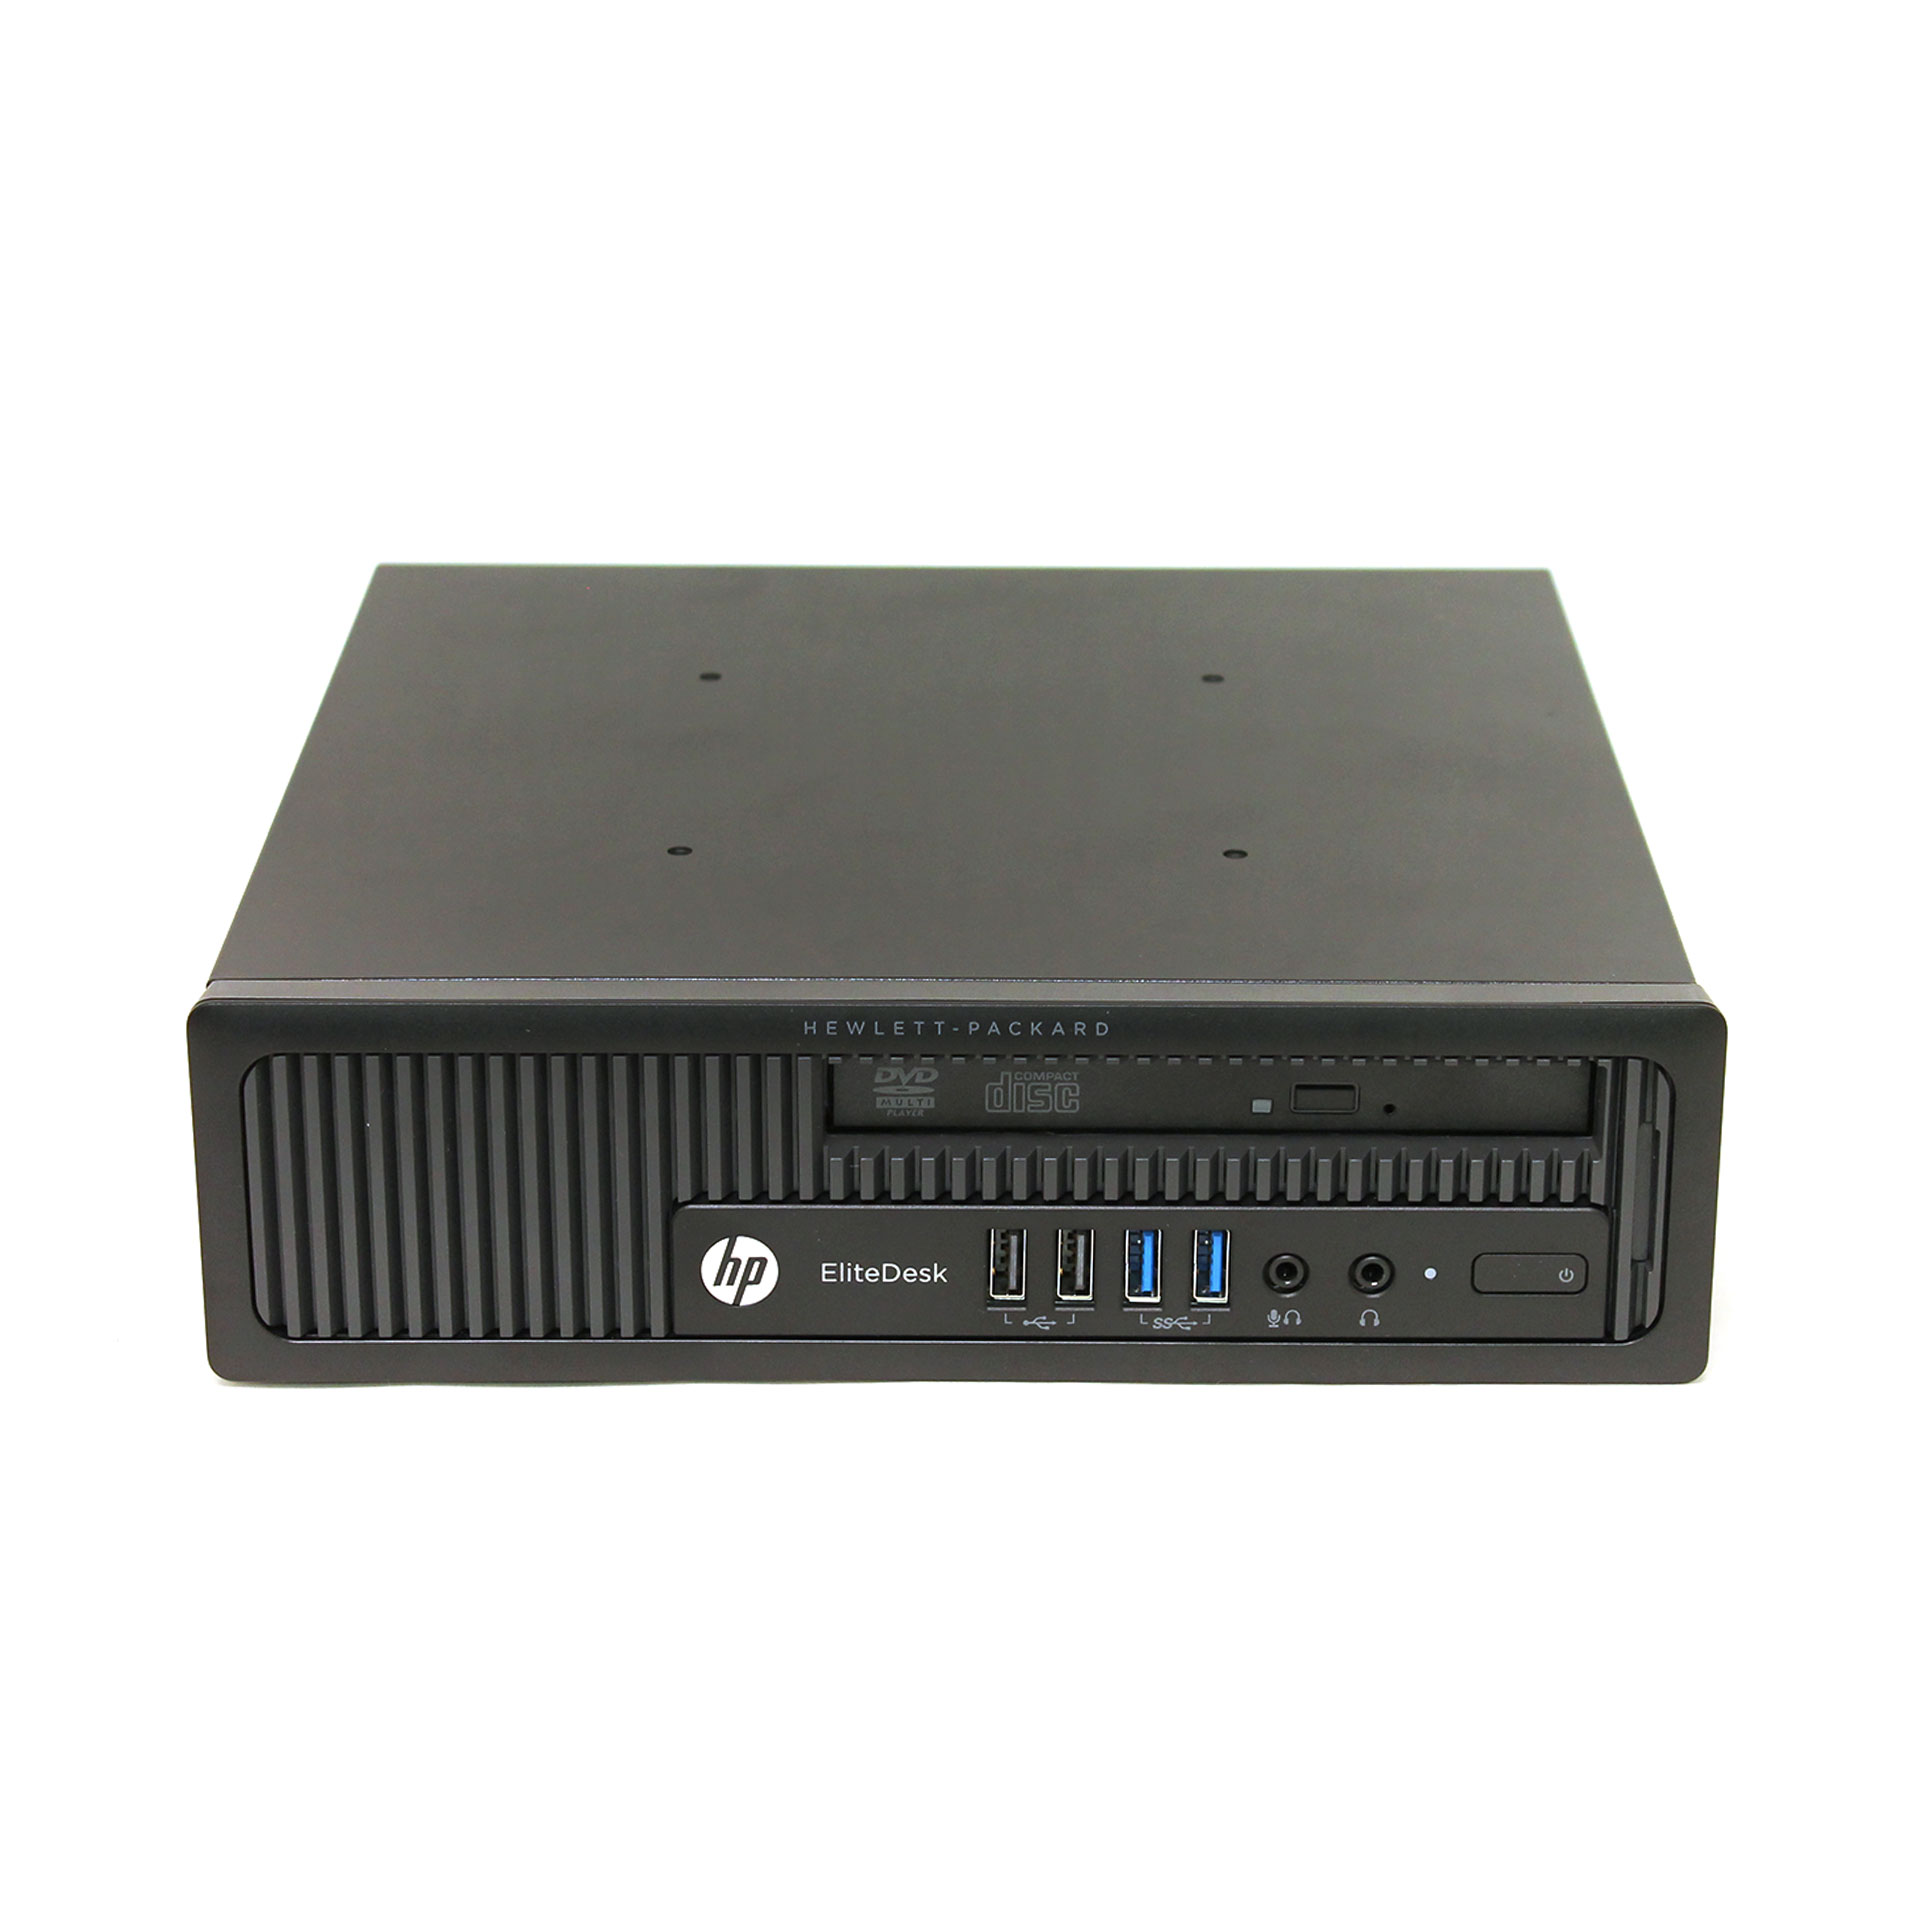 HP EliteDesk 800 G1 Core i5 4590S 3 GHz 4GB 320GB K4U85US#ABA